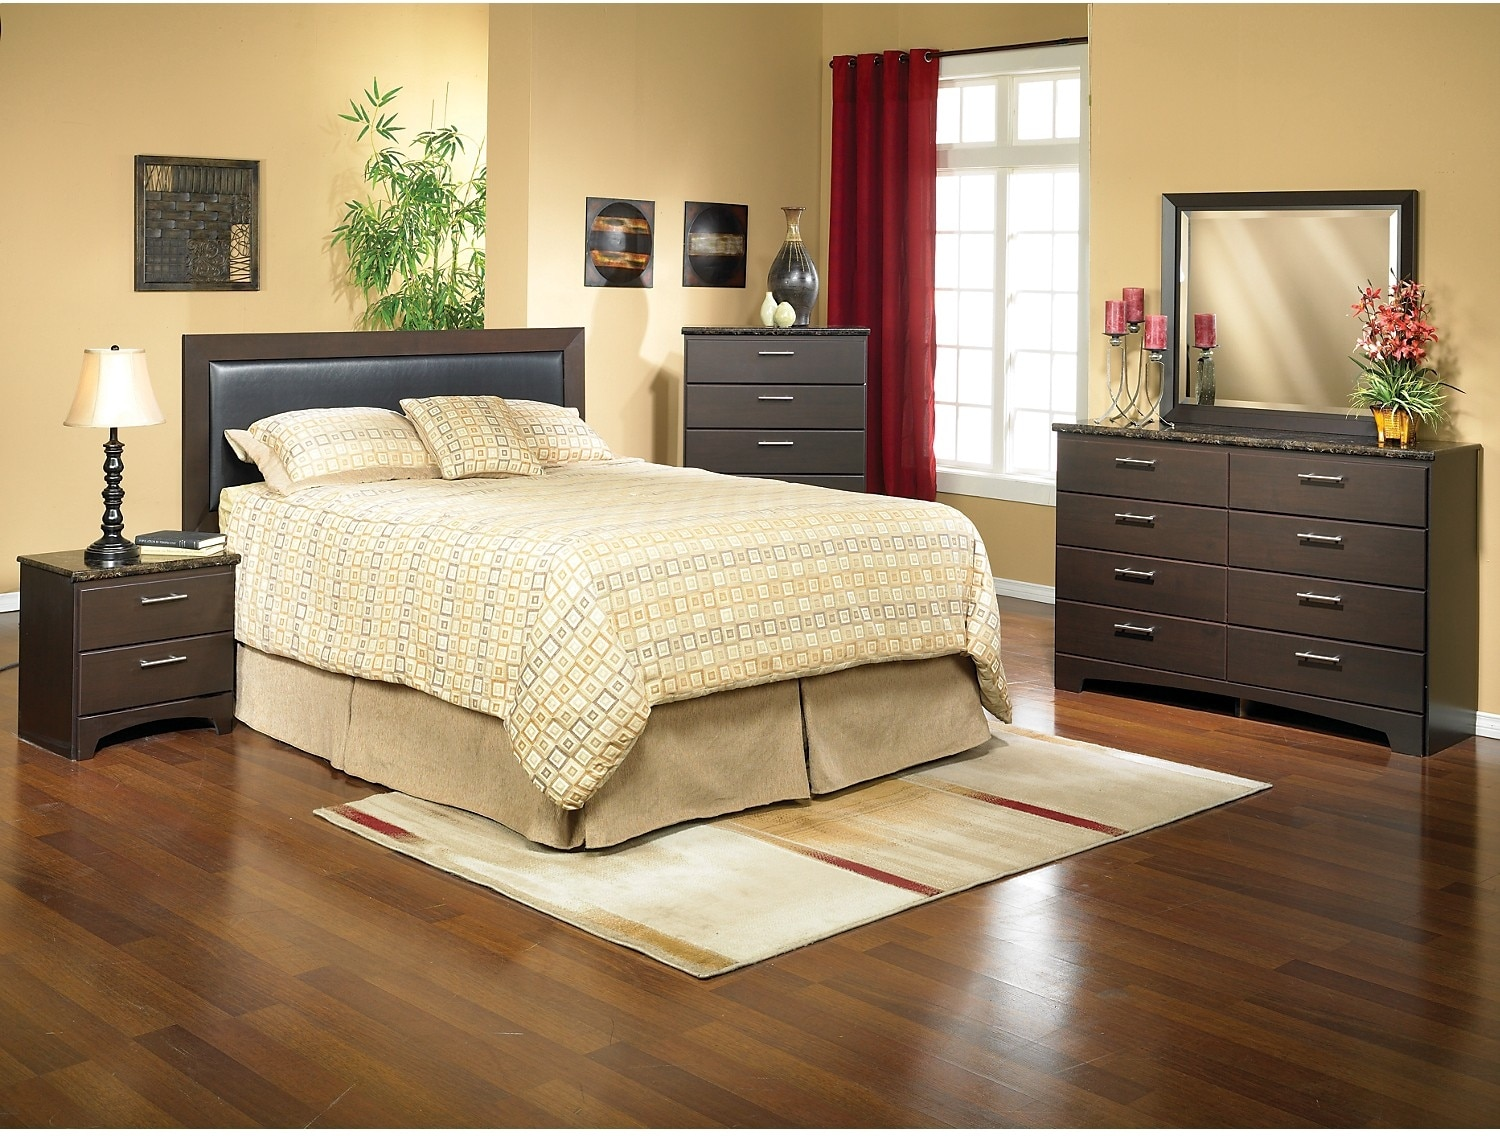 Furniture united furniture warehouse for Furniture 3 room package